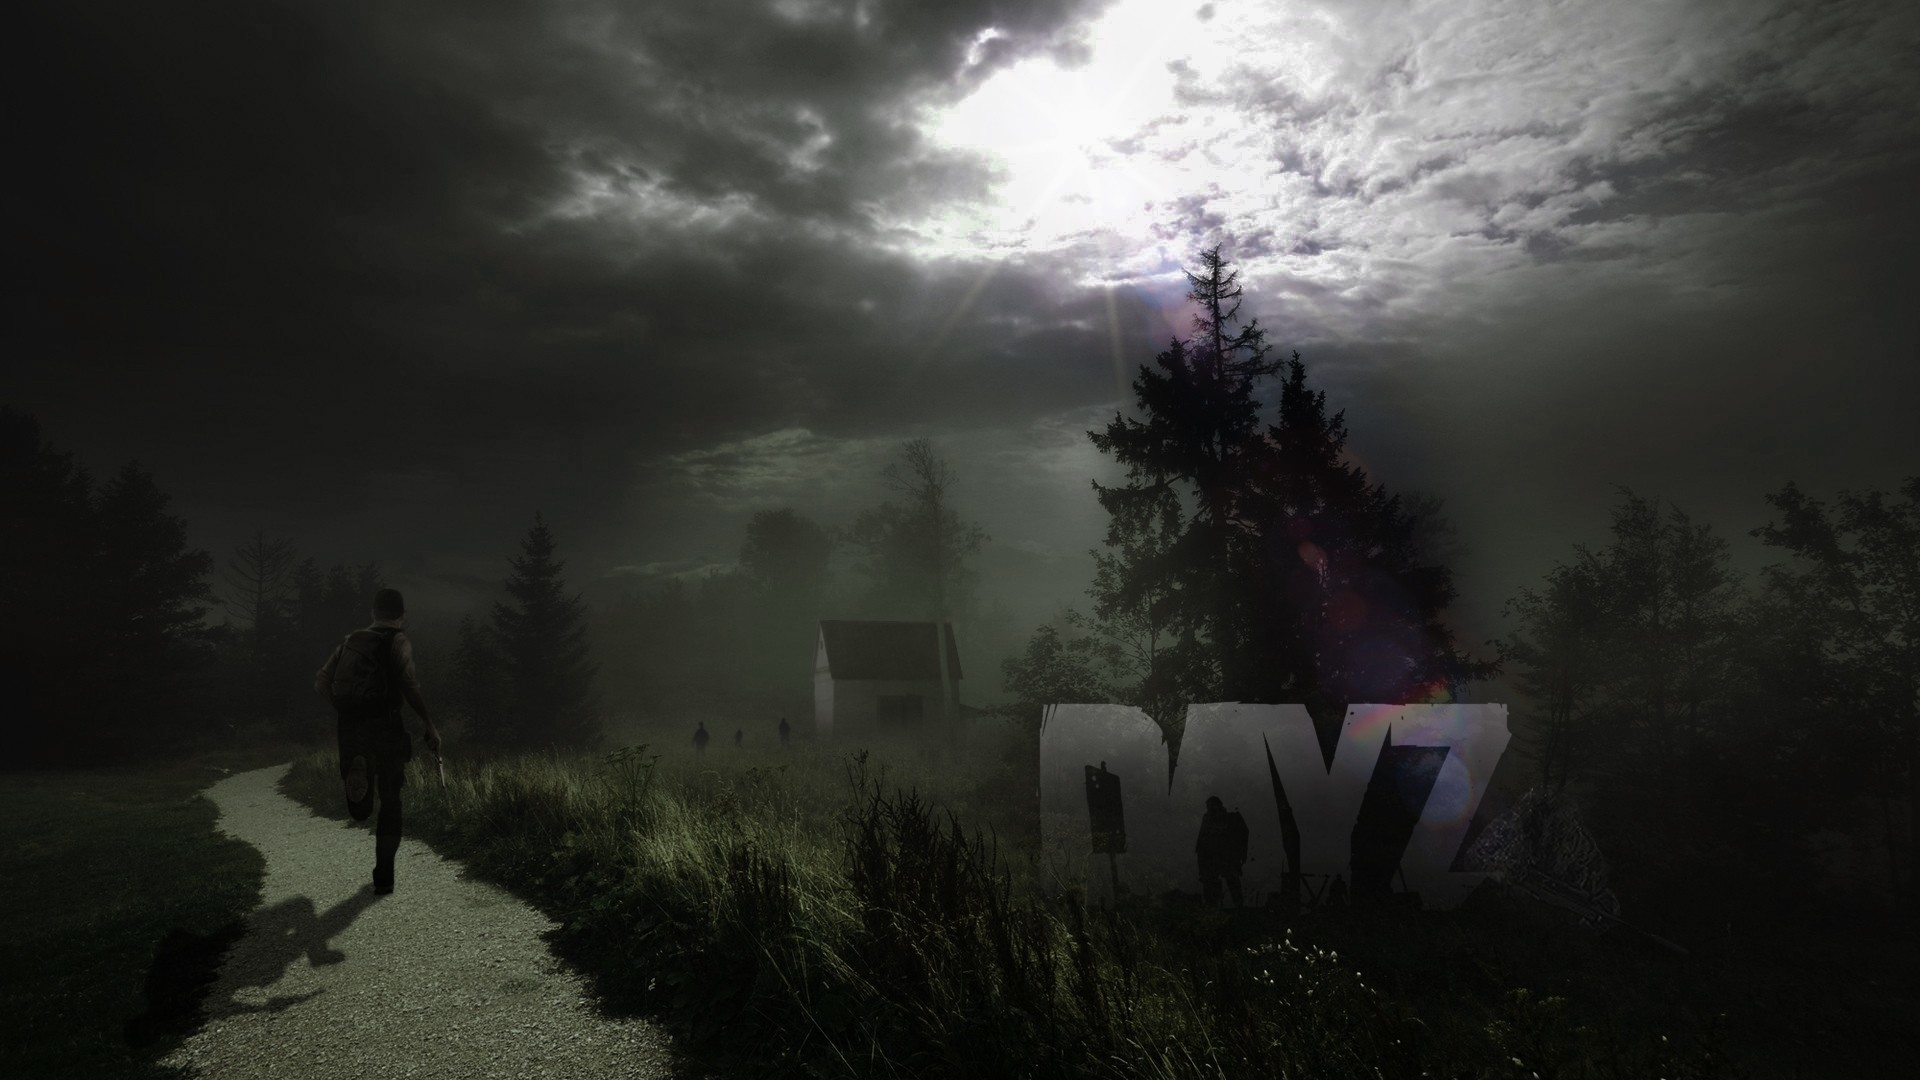 1920x1080 Wallpaper Zombies · Snipers · Apocalypse · Ghillie Suit